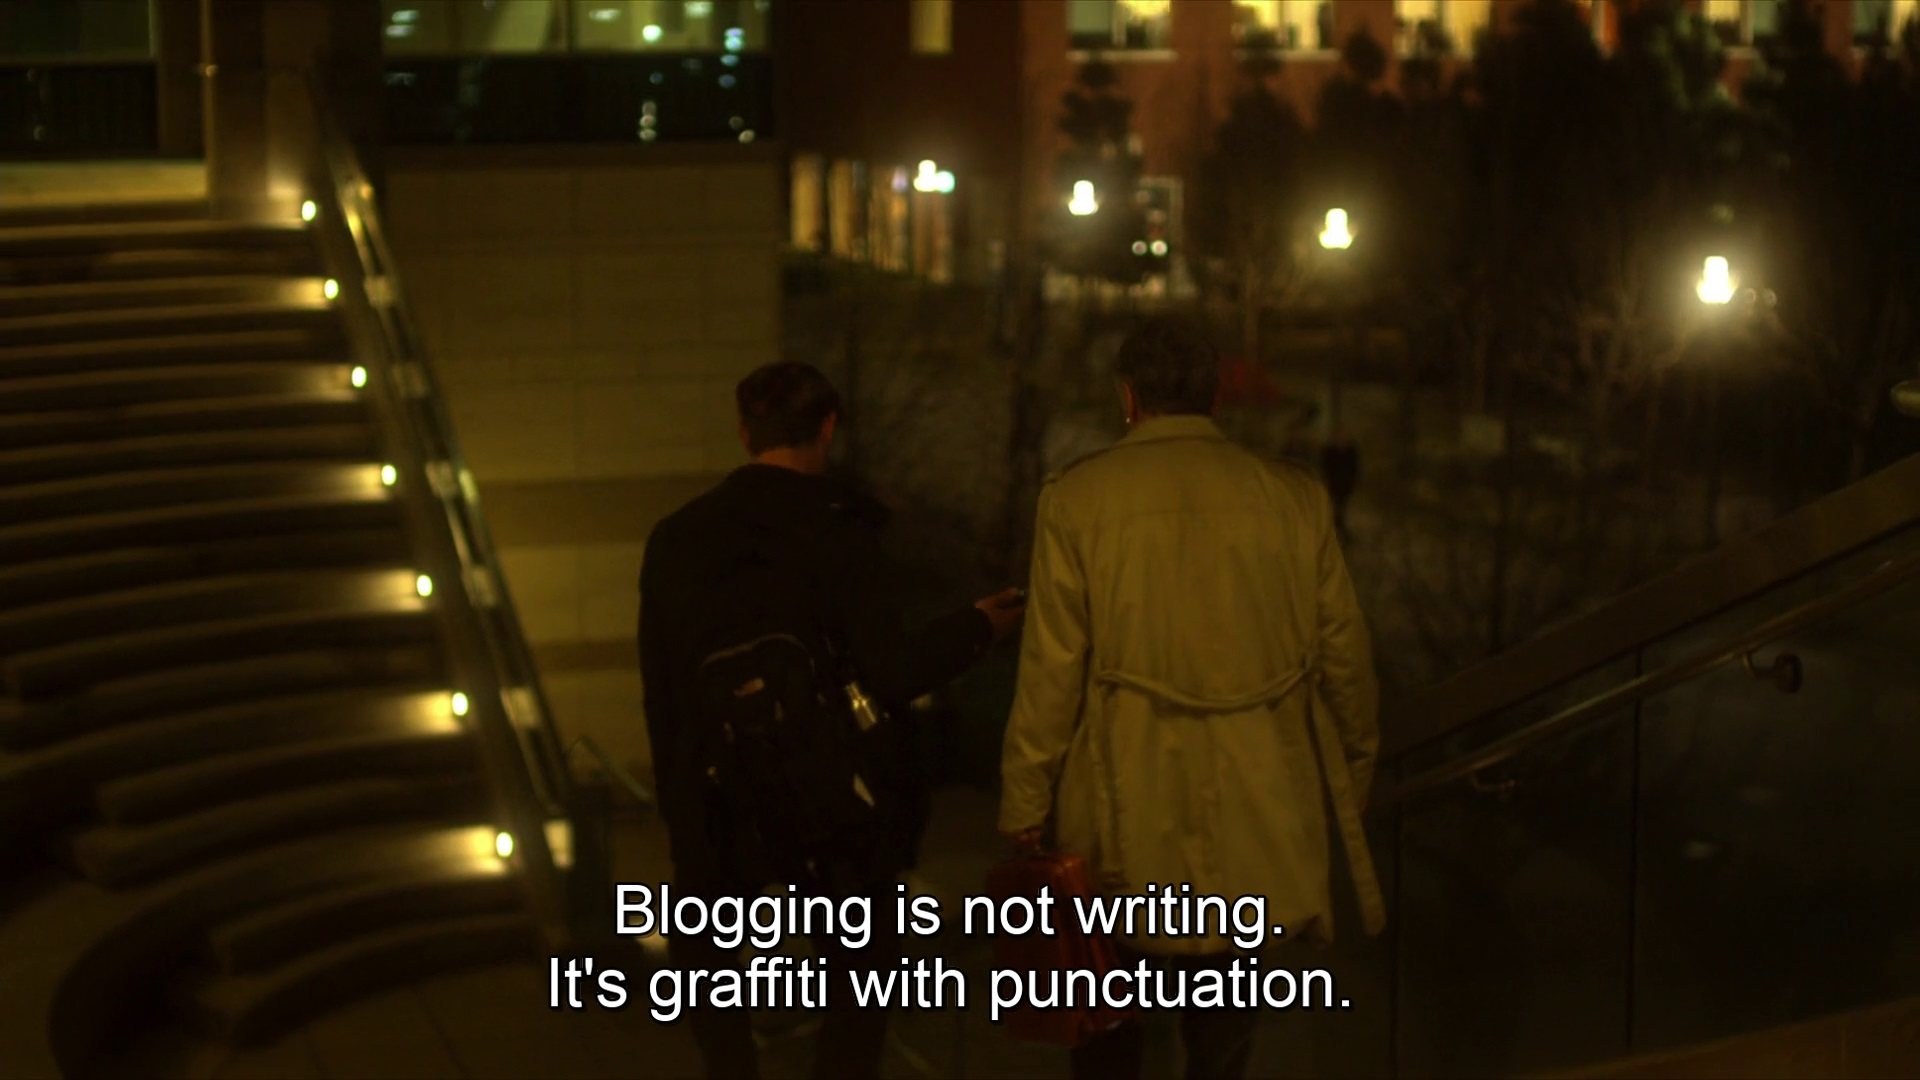 contagion soderbergh blogging quote